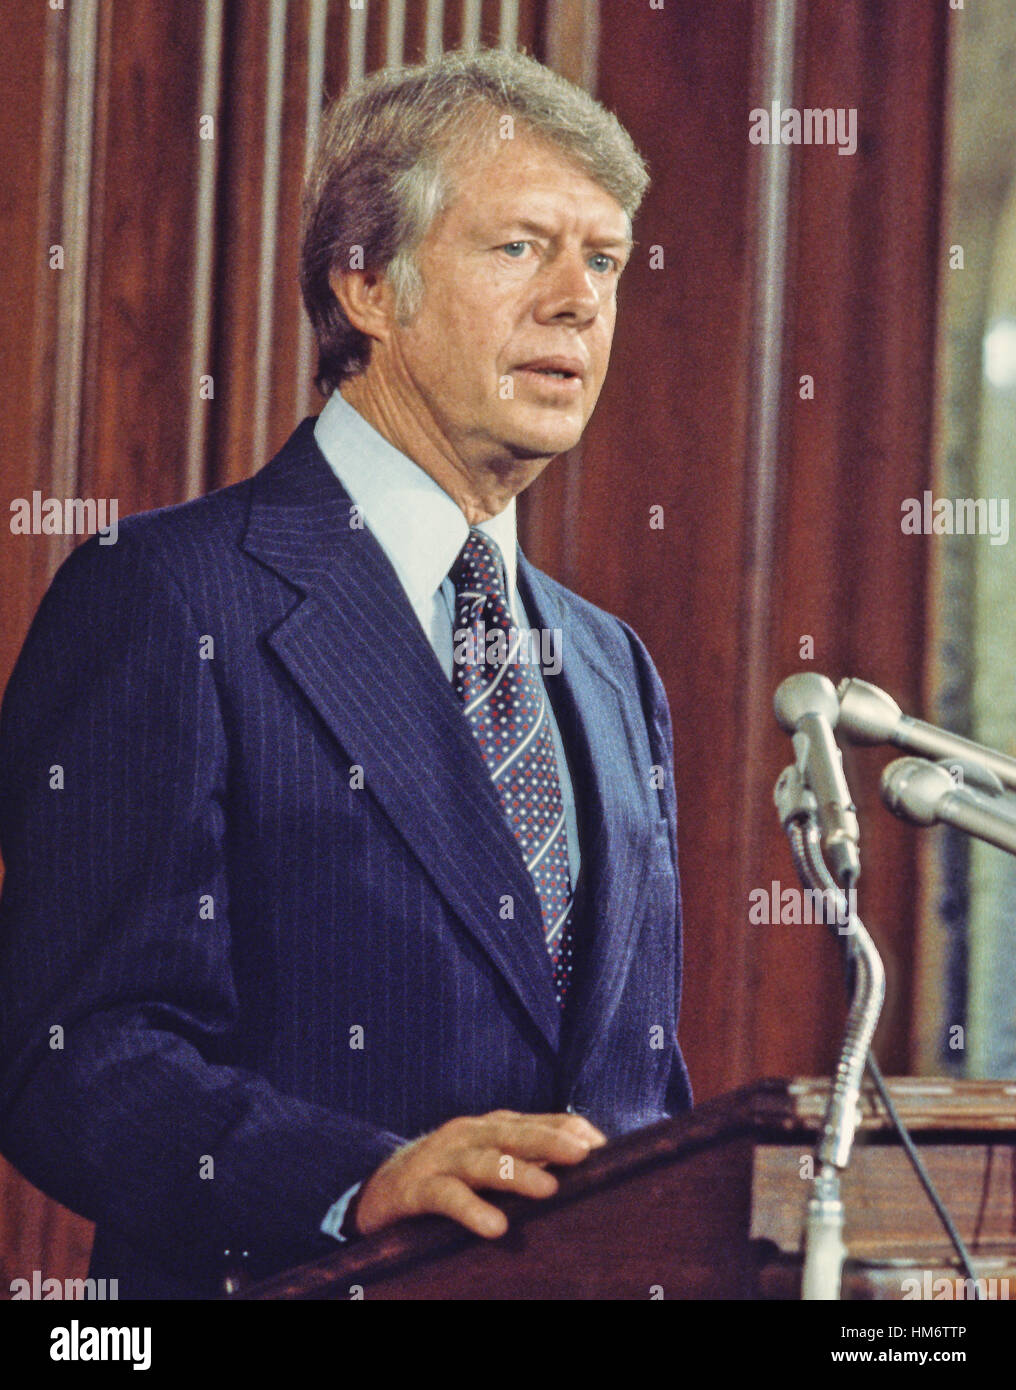 United States President-elect Jimmy Carter meets reporters after meeting with Congressional leaders in the US Capitol - Stock Image